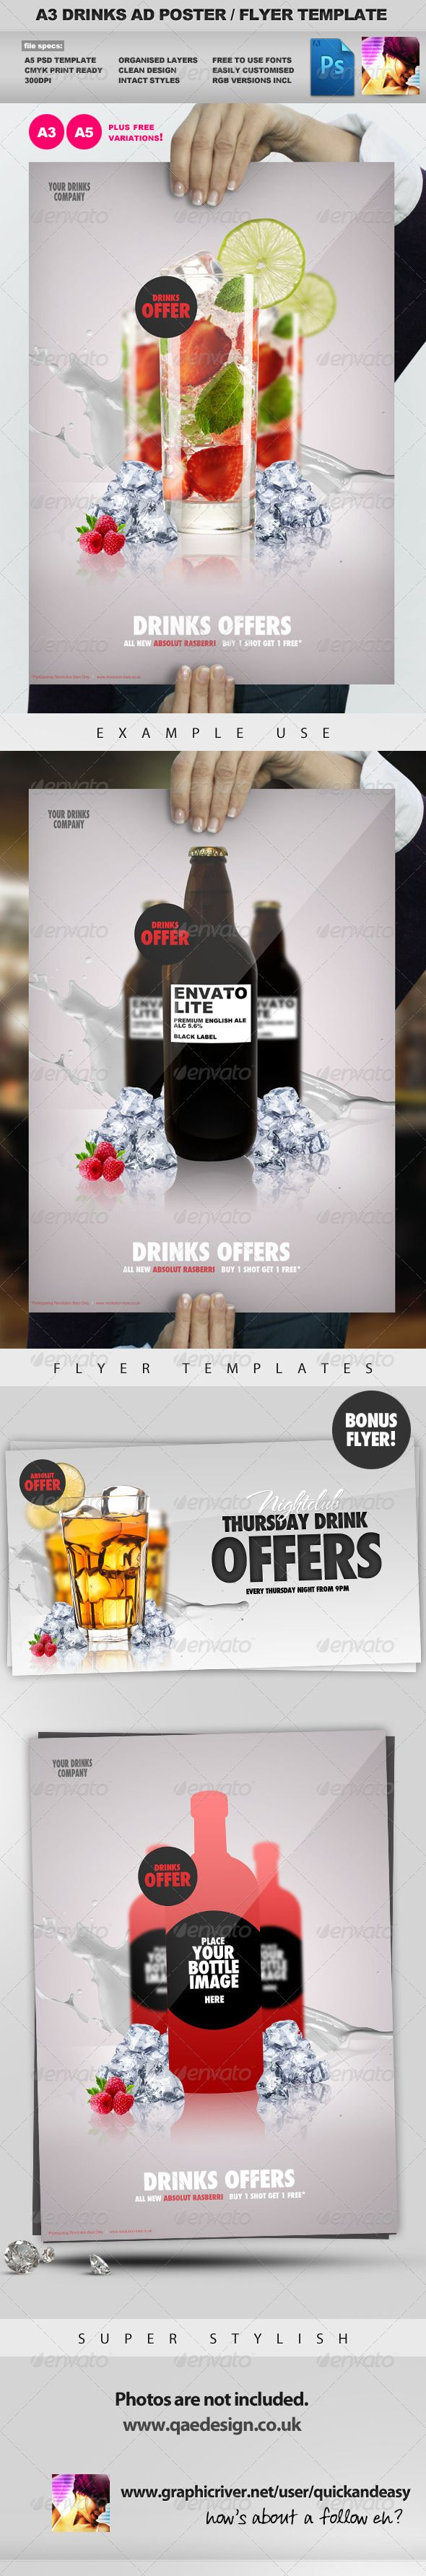 Advertising Poster Templates Amazing A3 Drinks Promotion Advertisement Poster Template  Pinterest .